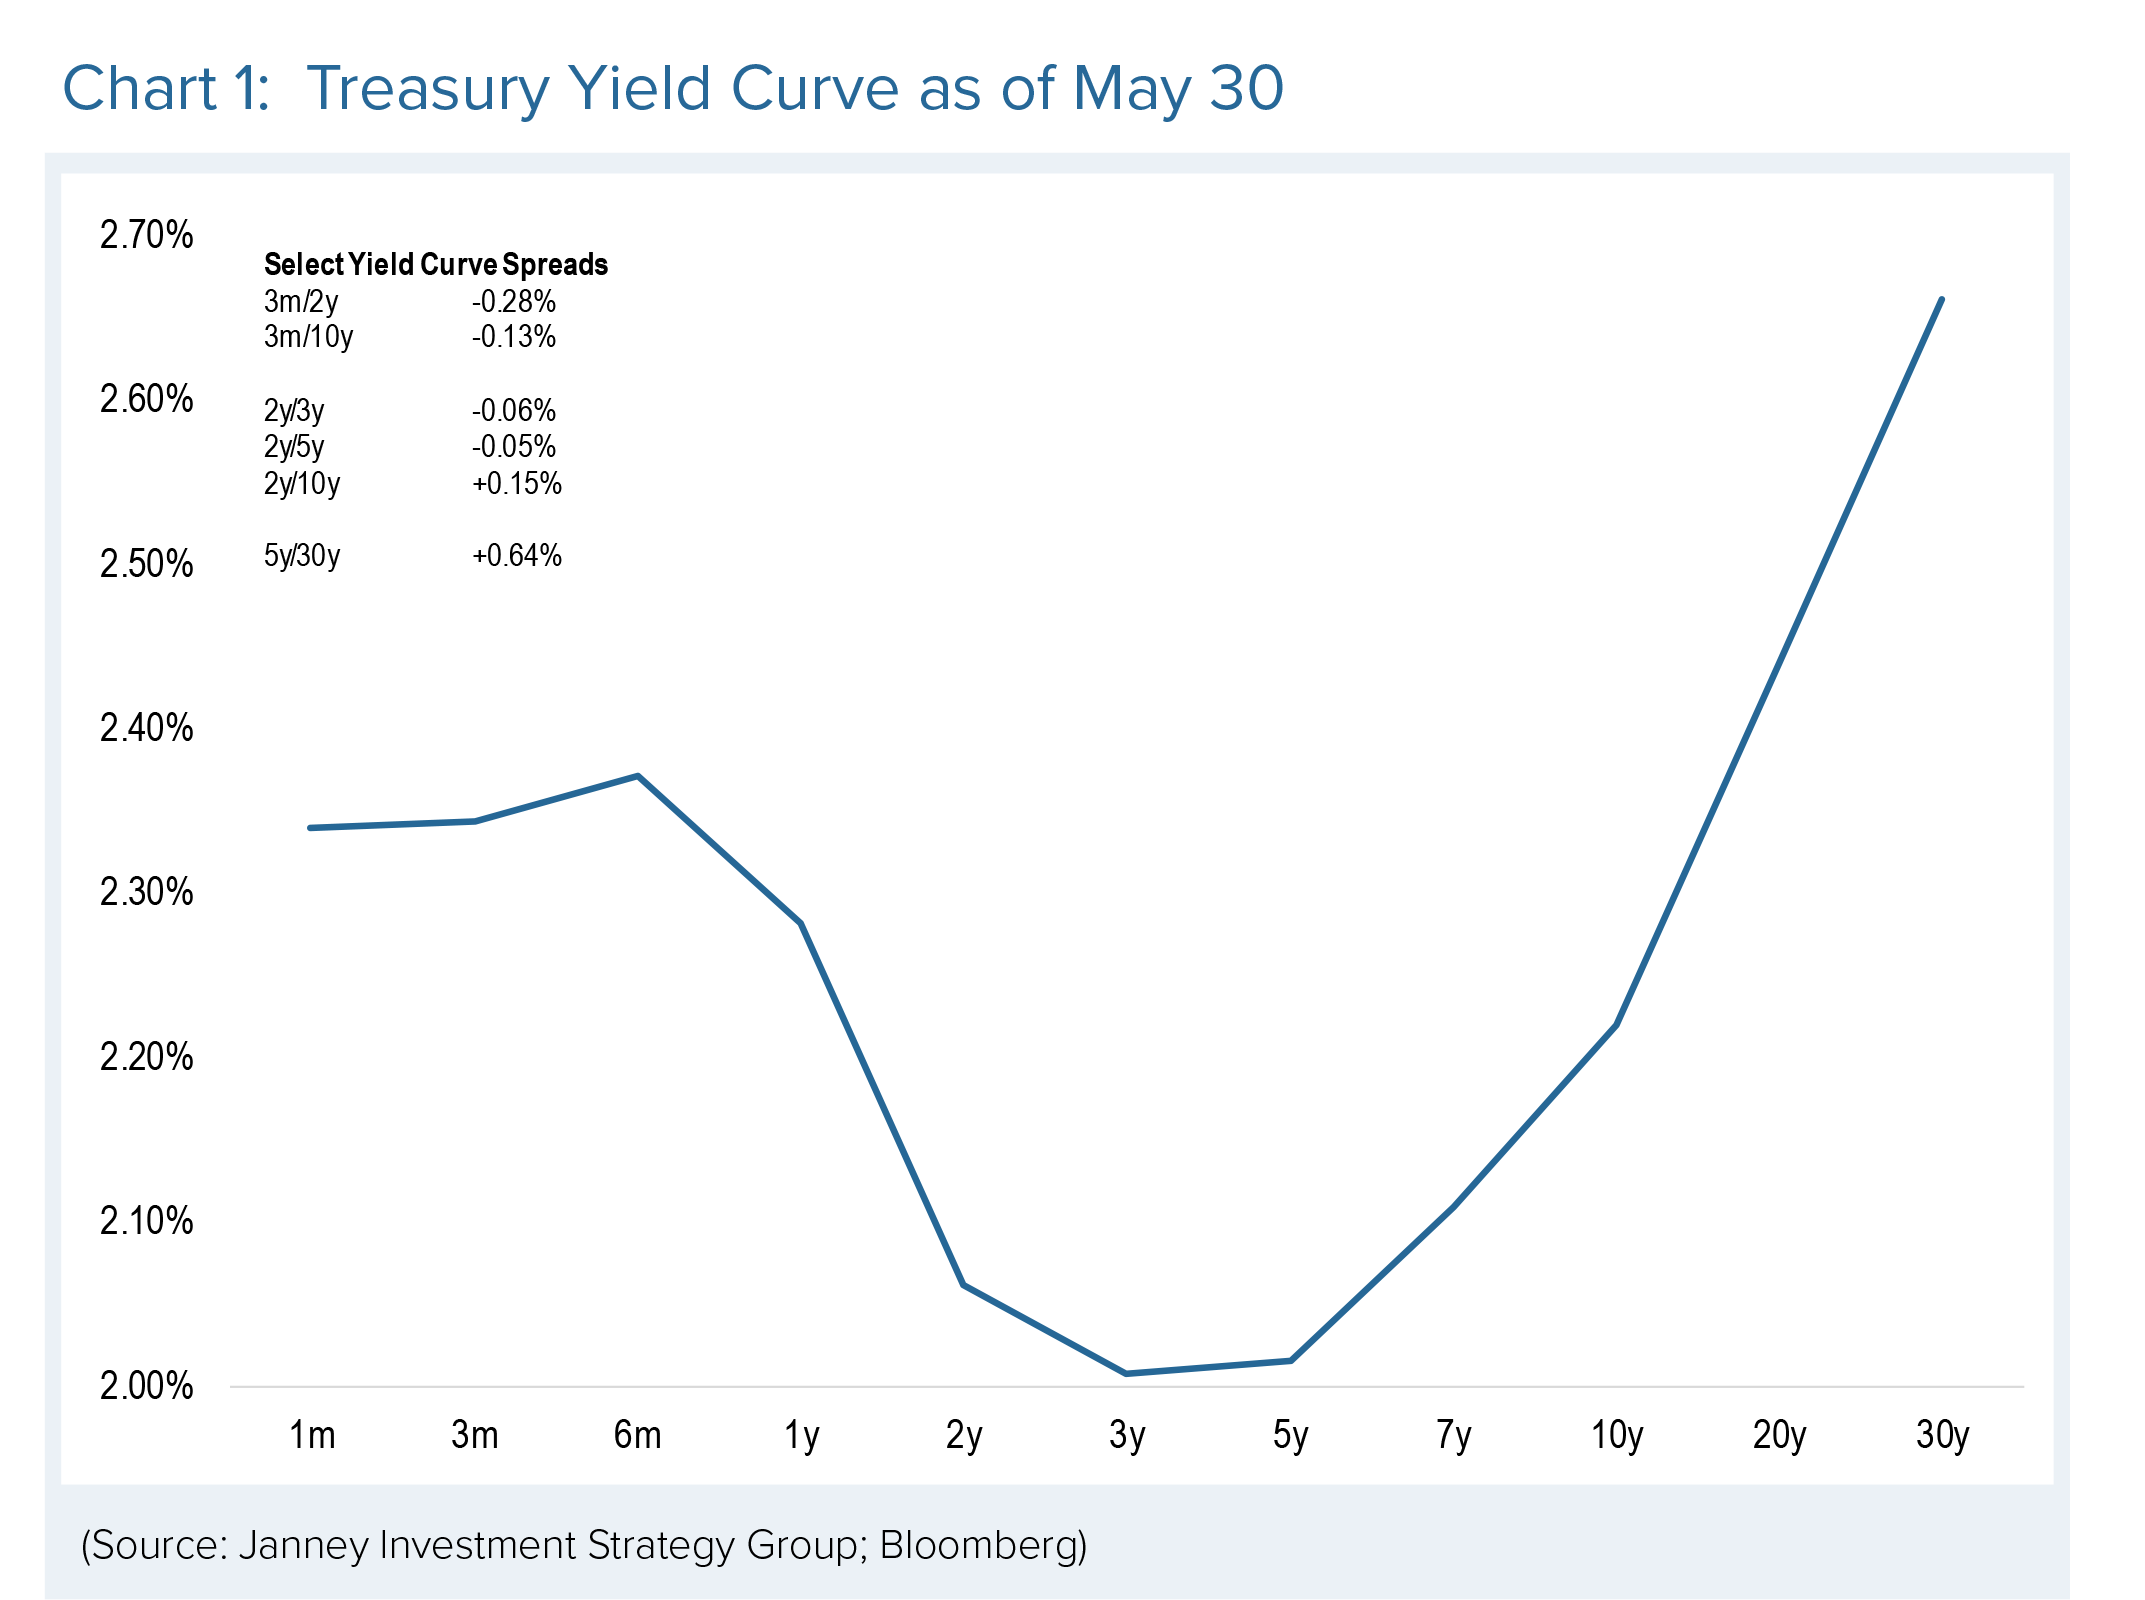 A line chart shows the treasury yield curve